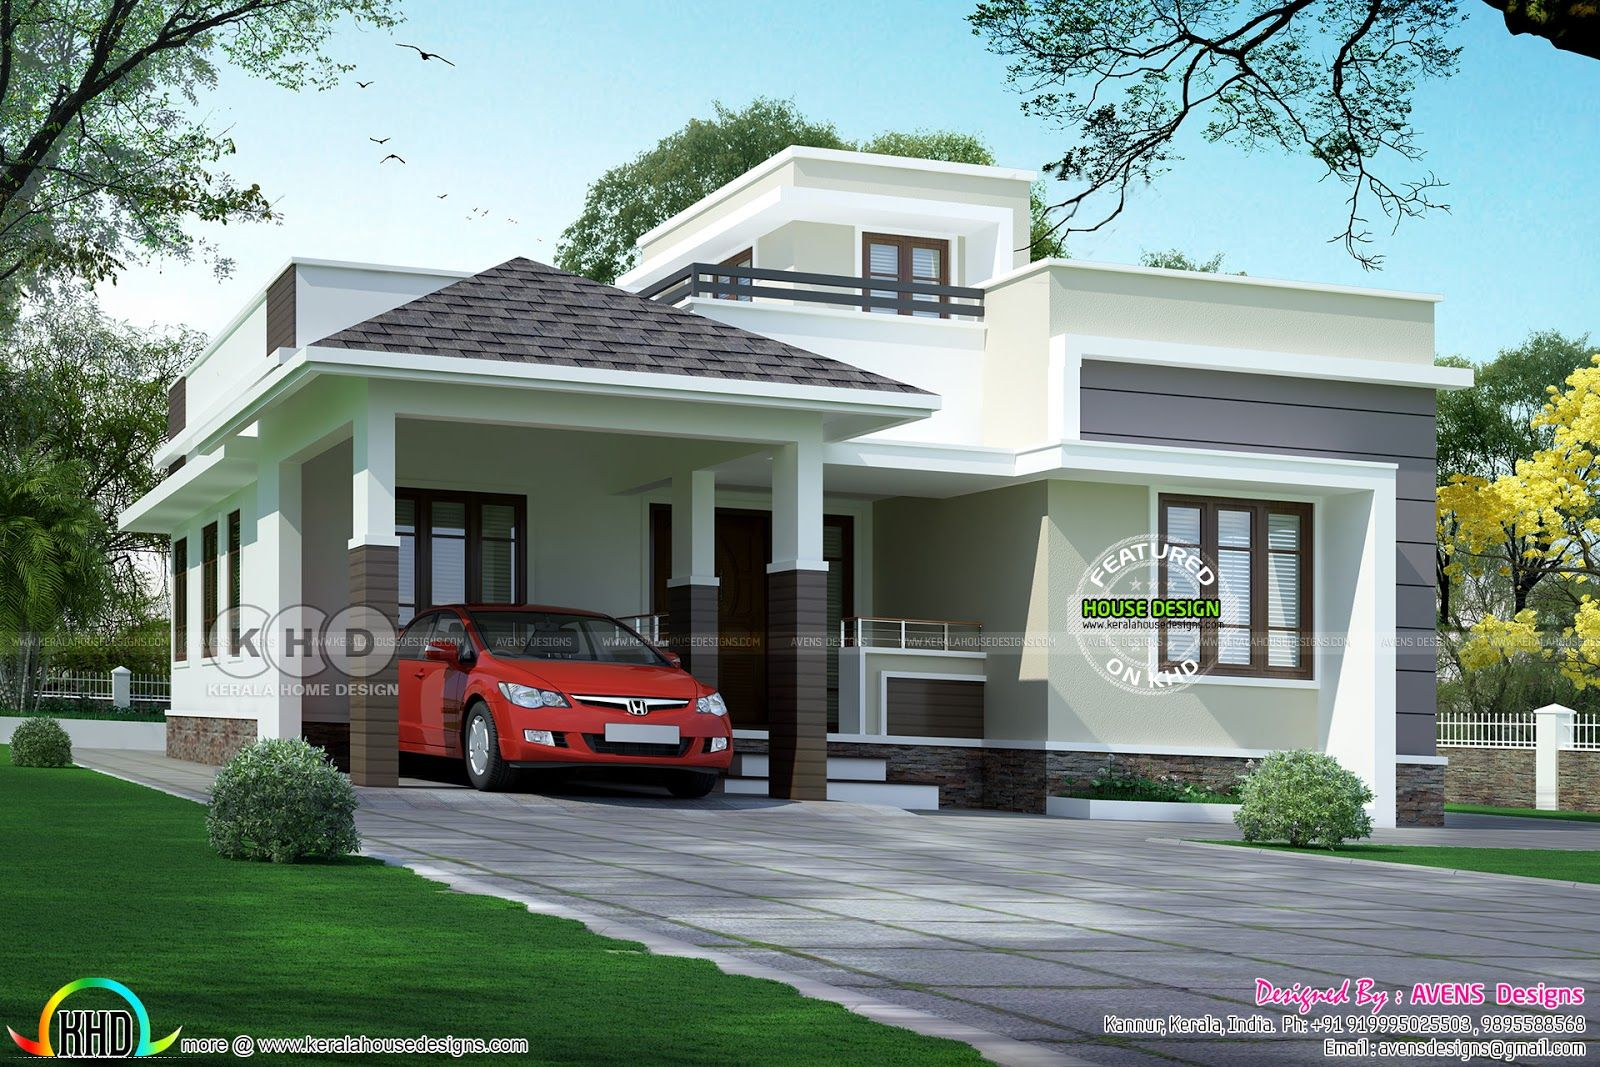 Small family home design by Avens Designs | Houses | Single ... on christmas house designs, family house designs, industrial house designs, alternative house designs, car house designs, low budget modern house, infinity house designs, most popular house designs, architectural house designs, fashion house designs, australia house designs,